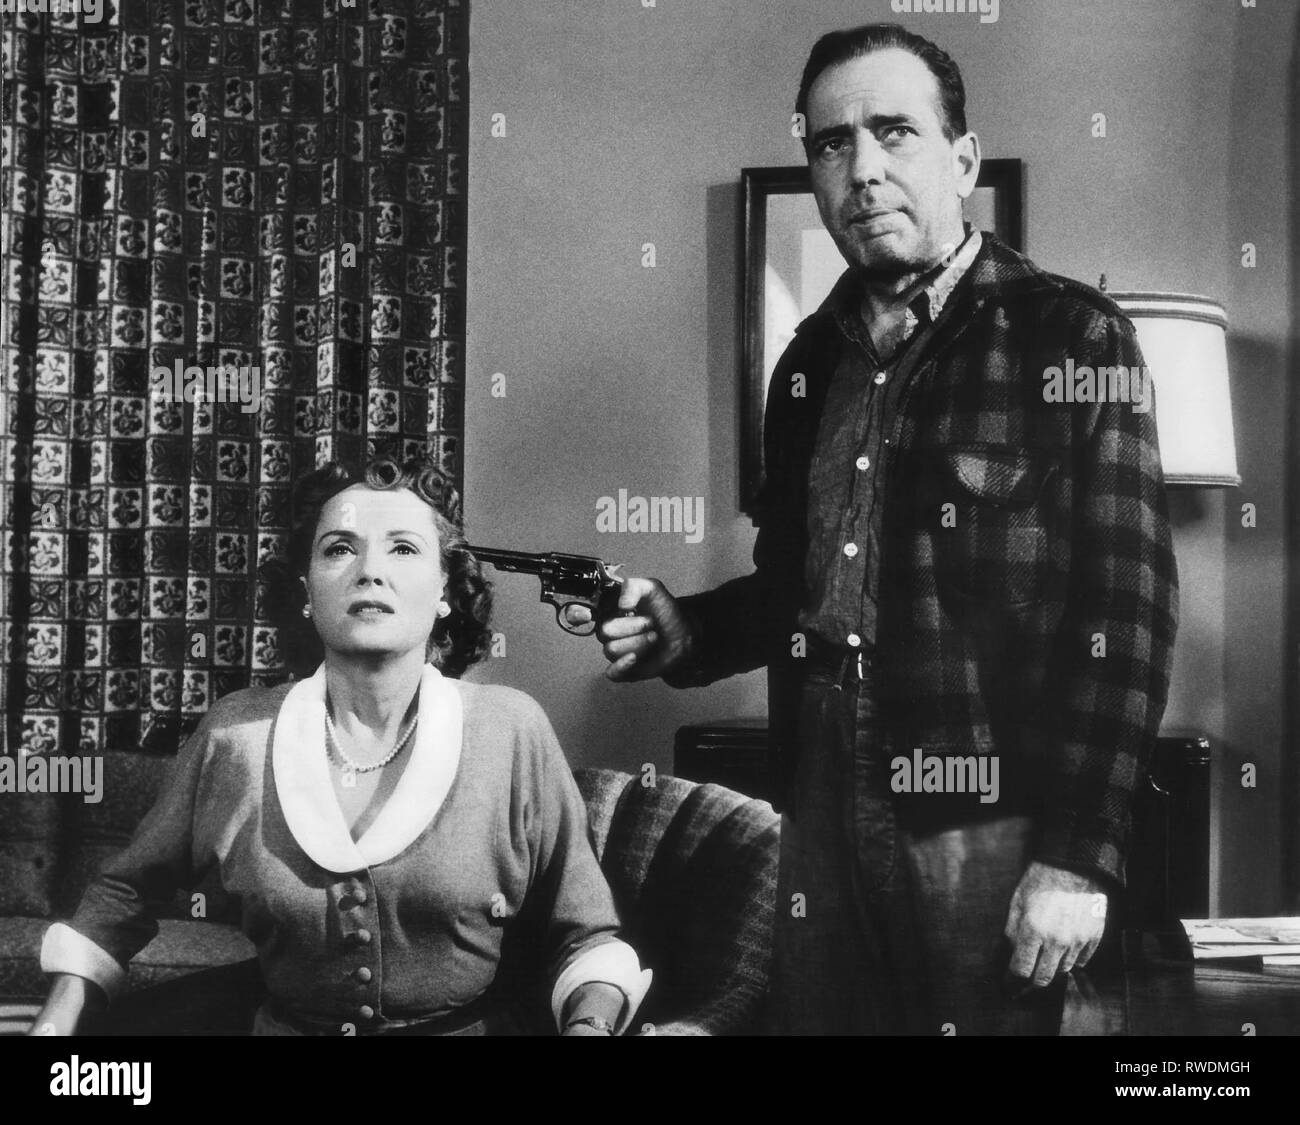 Scott Bogart The Desperate Hours 1955 Stock Photo Alamy The desperate hours directed by michael cimino, is an attempt to remake the humphrey bogart classic of the same name with indifferent results. https www alamy com scottbogart the desperate hours 1955 image239402705 html